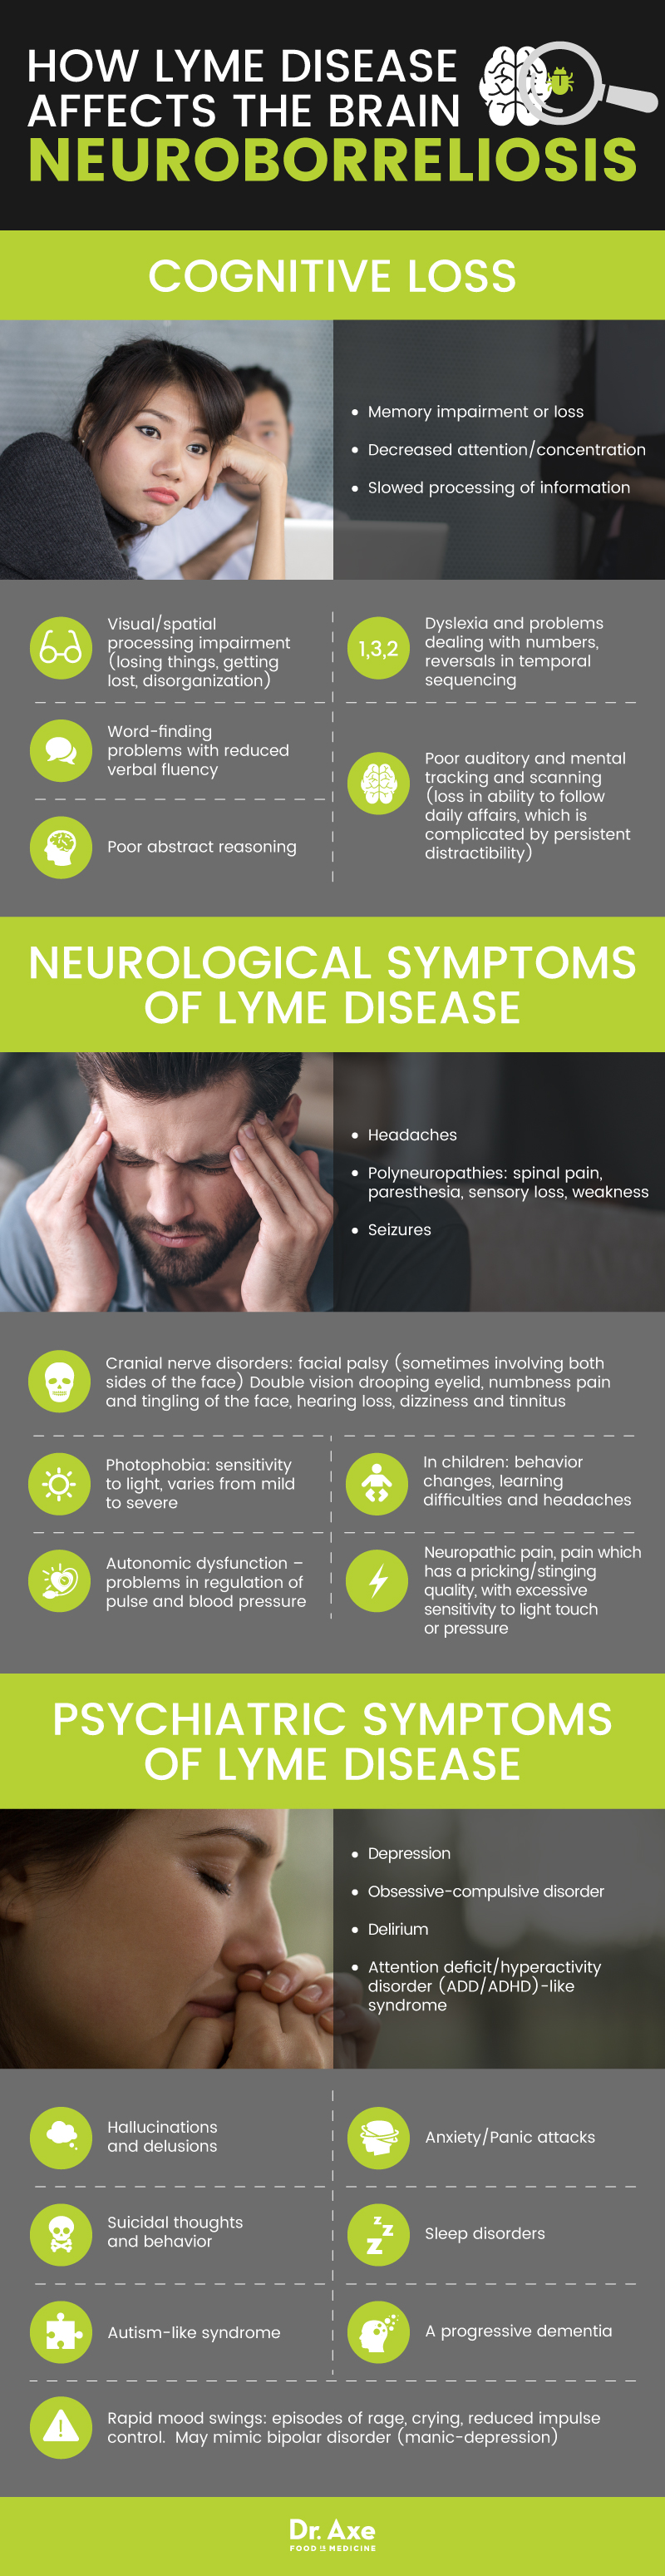 How Lyme disease affects the brain - Dr. Axe